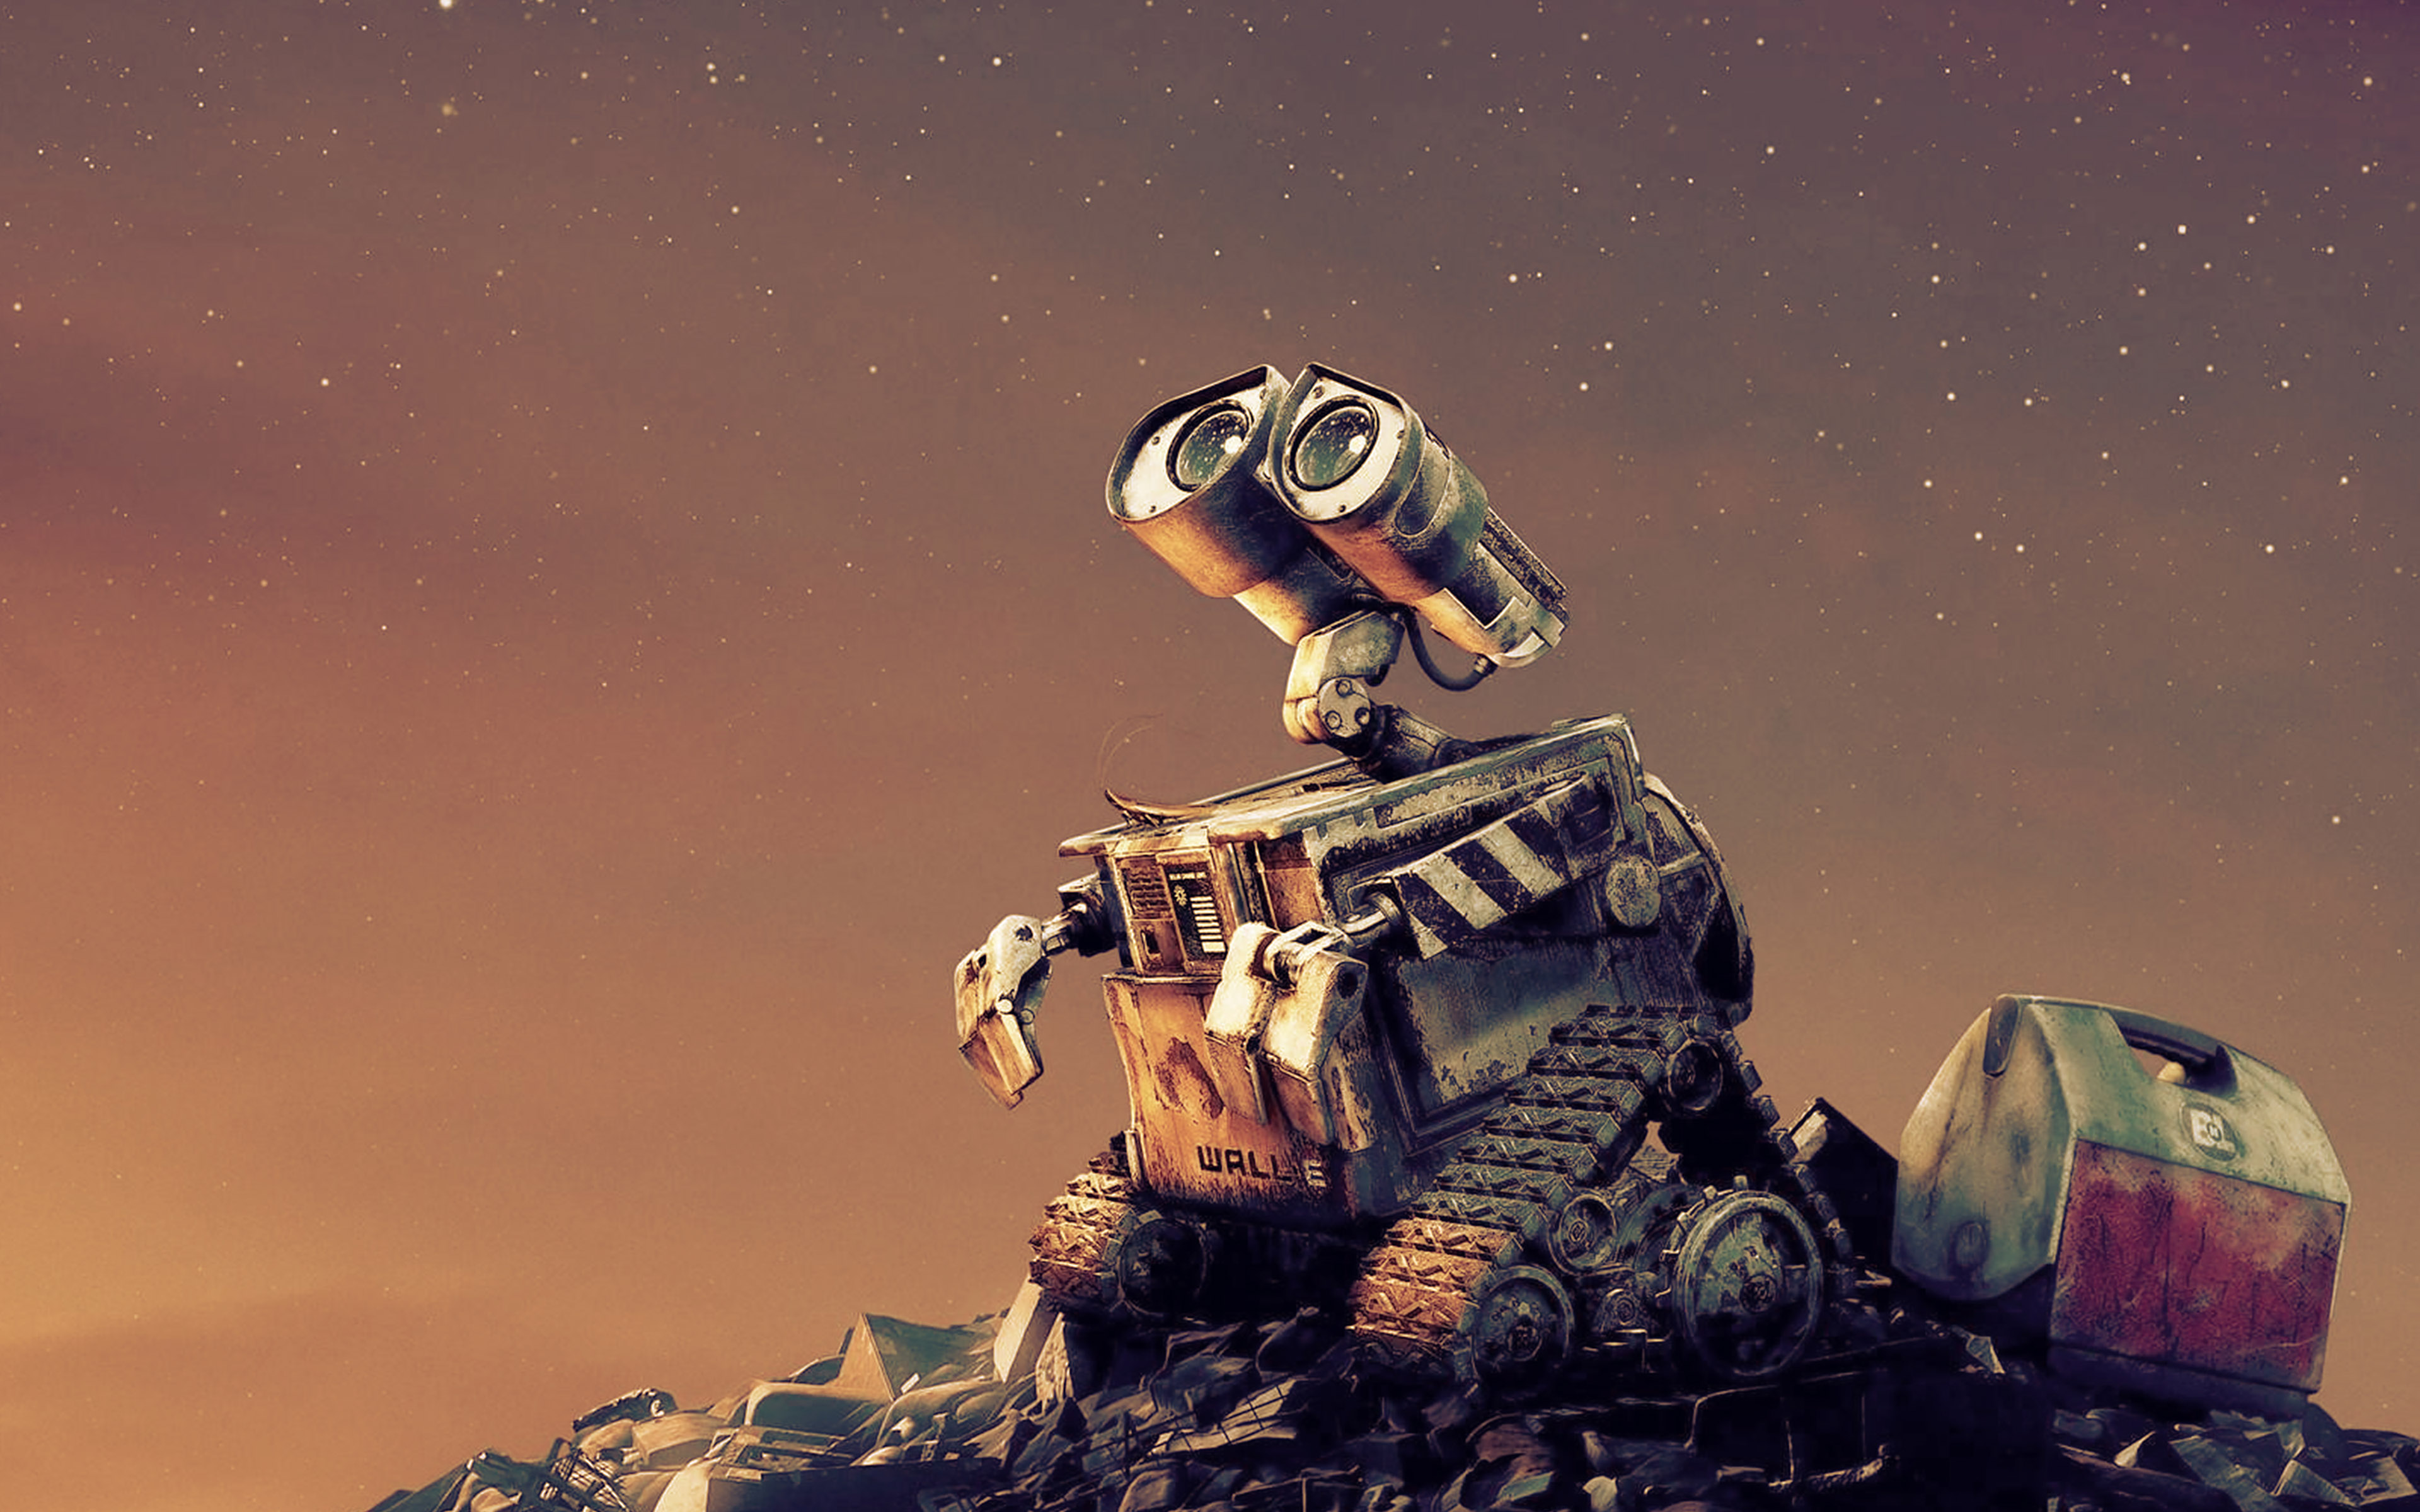 Home Fall Desktop Wallpapers For Macbook Air Ag67 Wall E Disney Want Go Home Red Art Papers Co